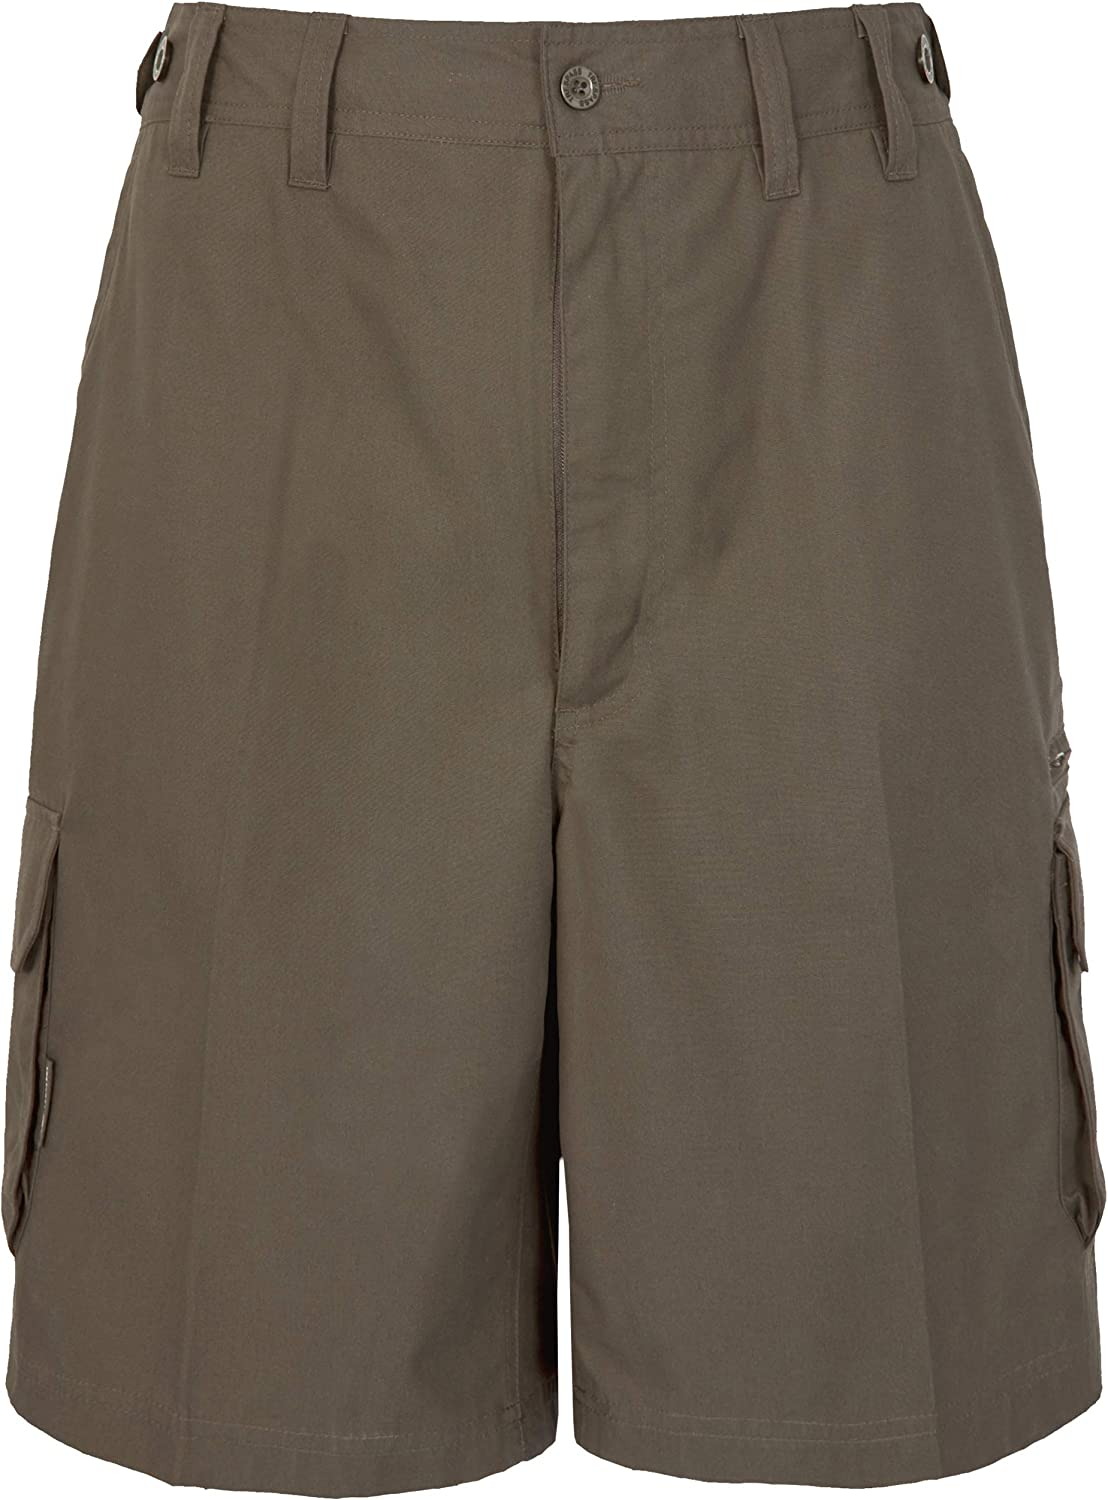 Gally 25% OFF Mens Summer Max 55% OFF Active Cargo for Trekking Hiking Shorts Travel